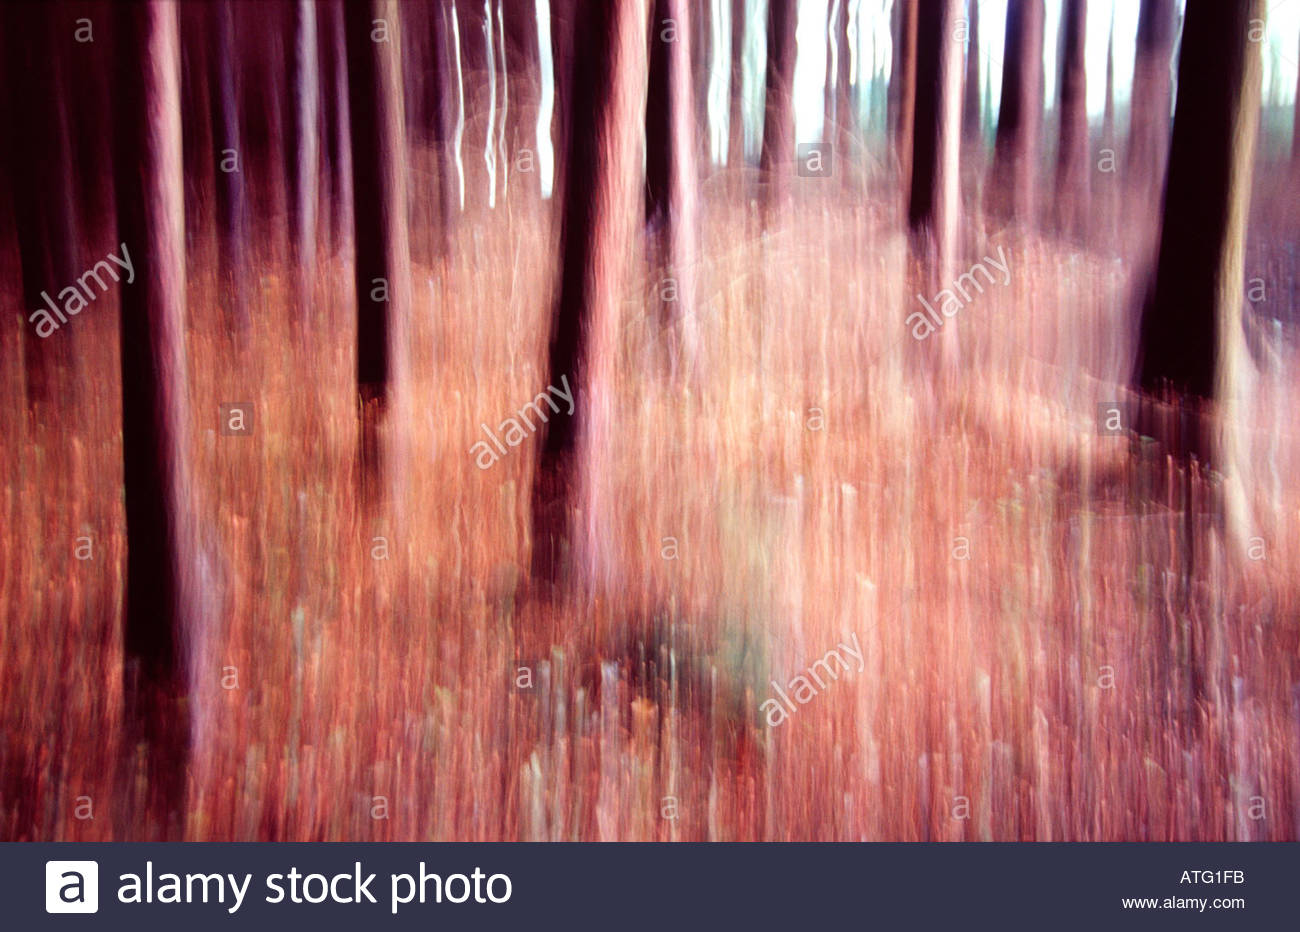 Dancing pine trunks, Tollymore Forest, Co Down, Ireland - Stock Image